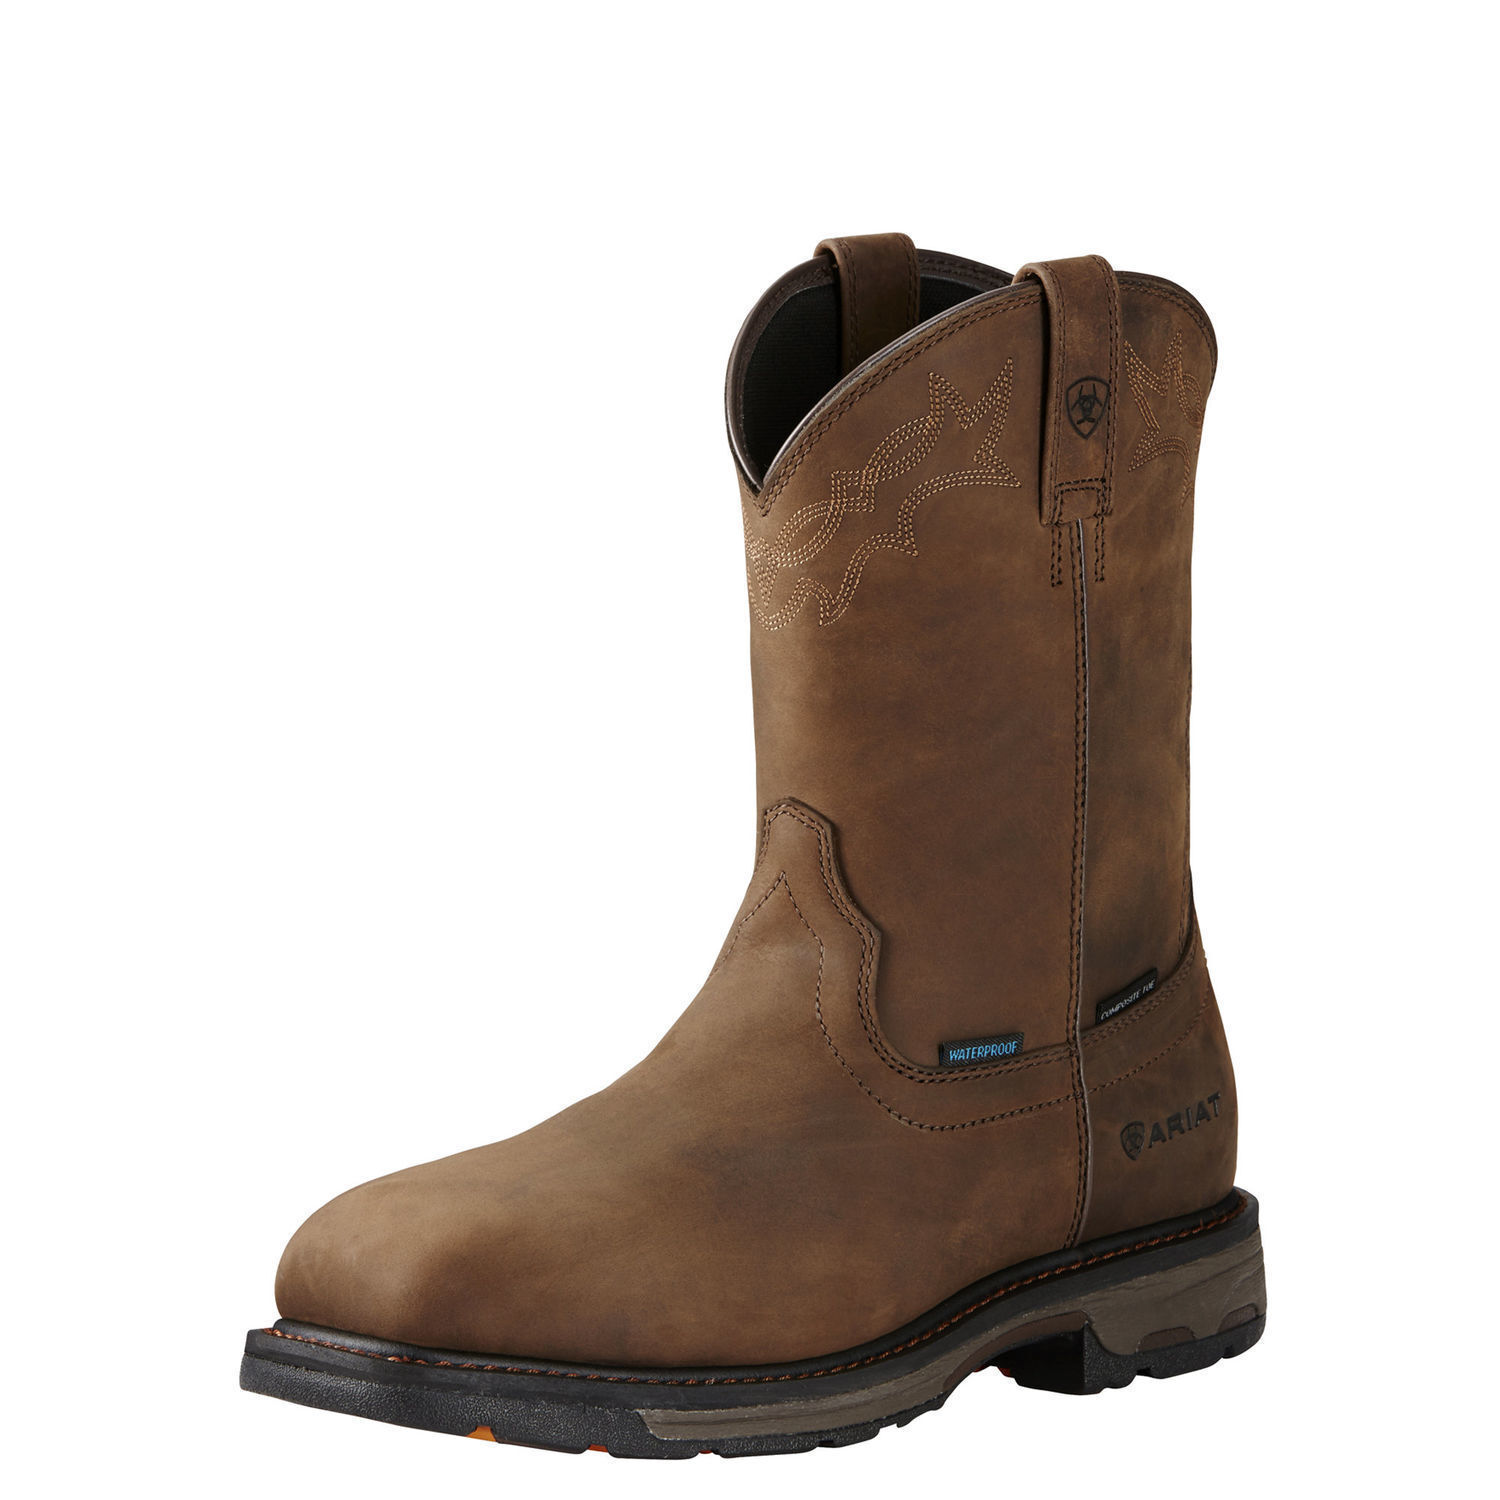 Ariat 10020092 Workhog H2O Safety Toe Pull On EH Rated Western Wellington Boots